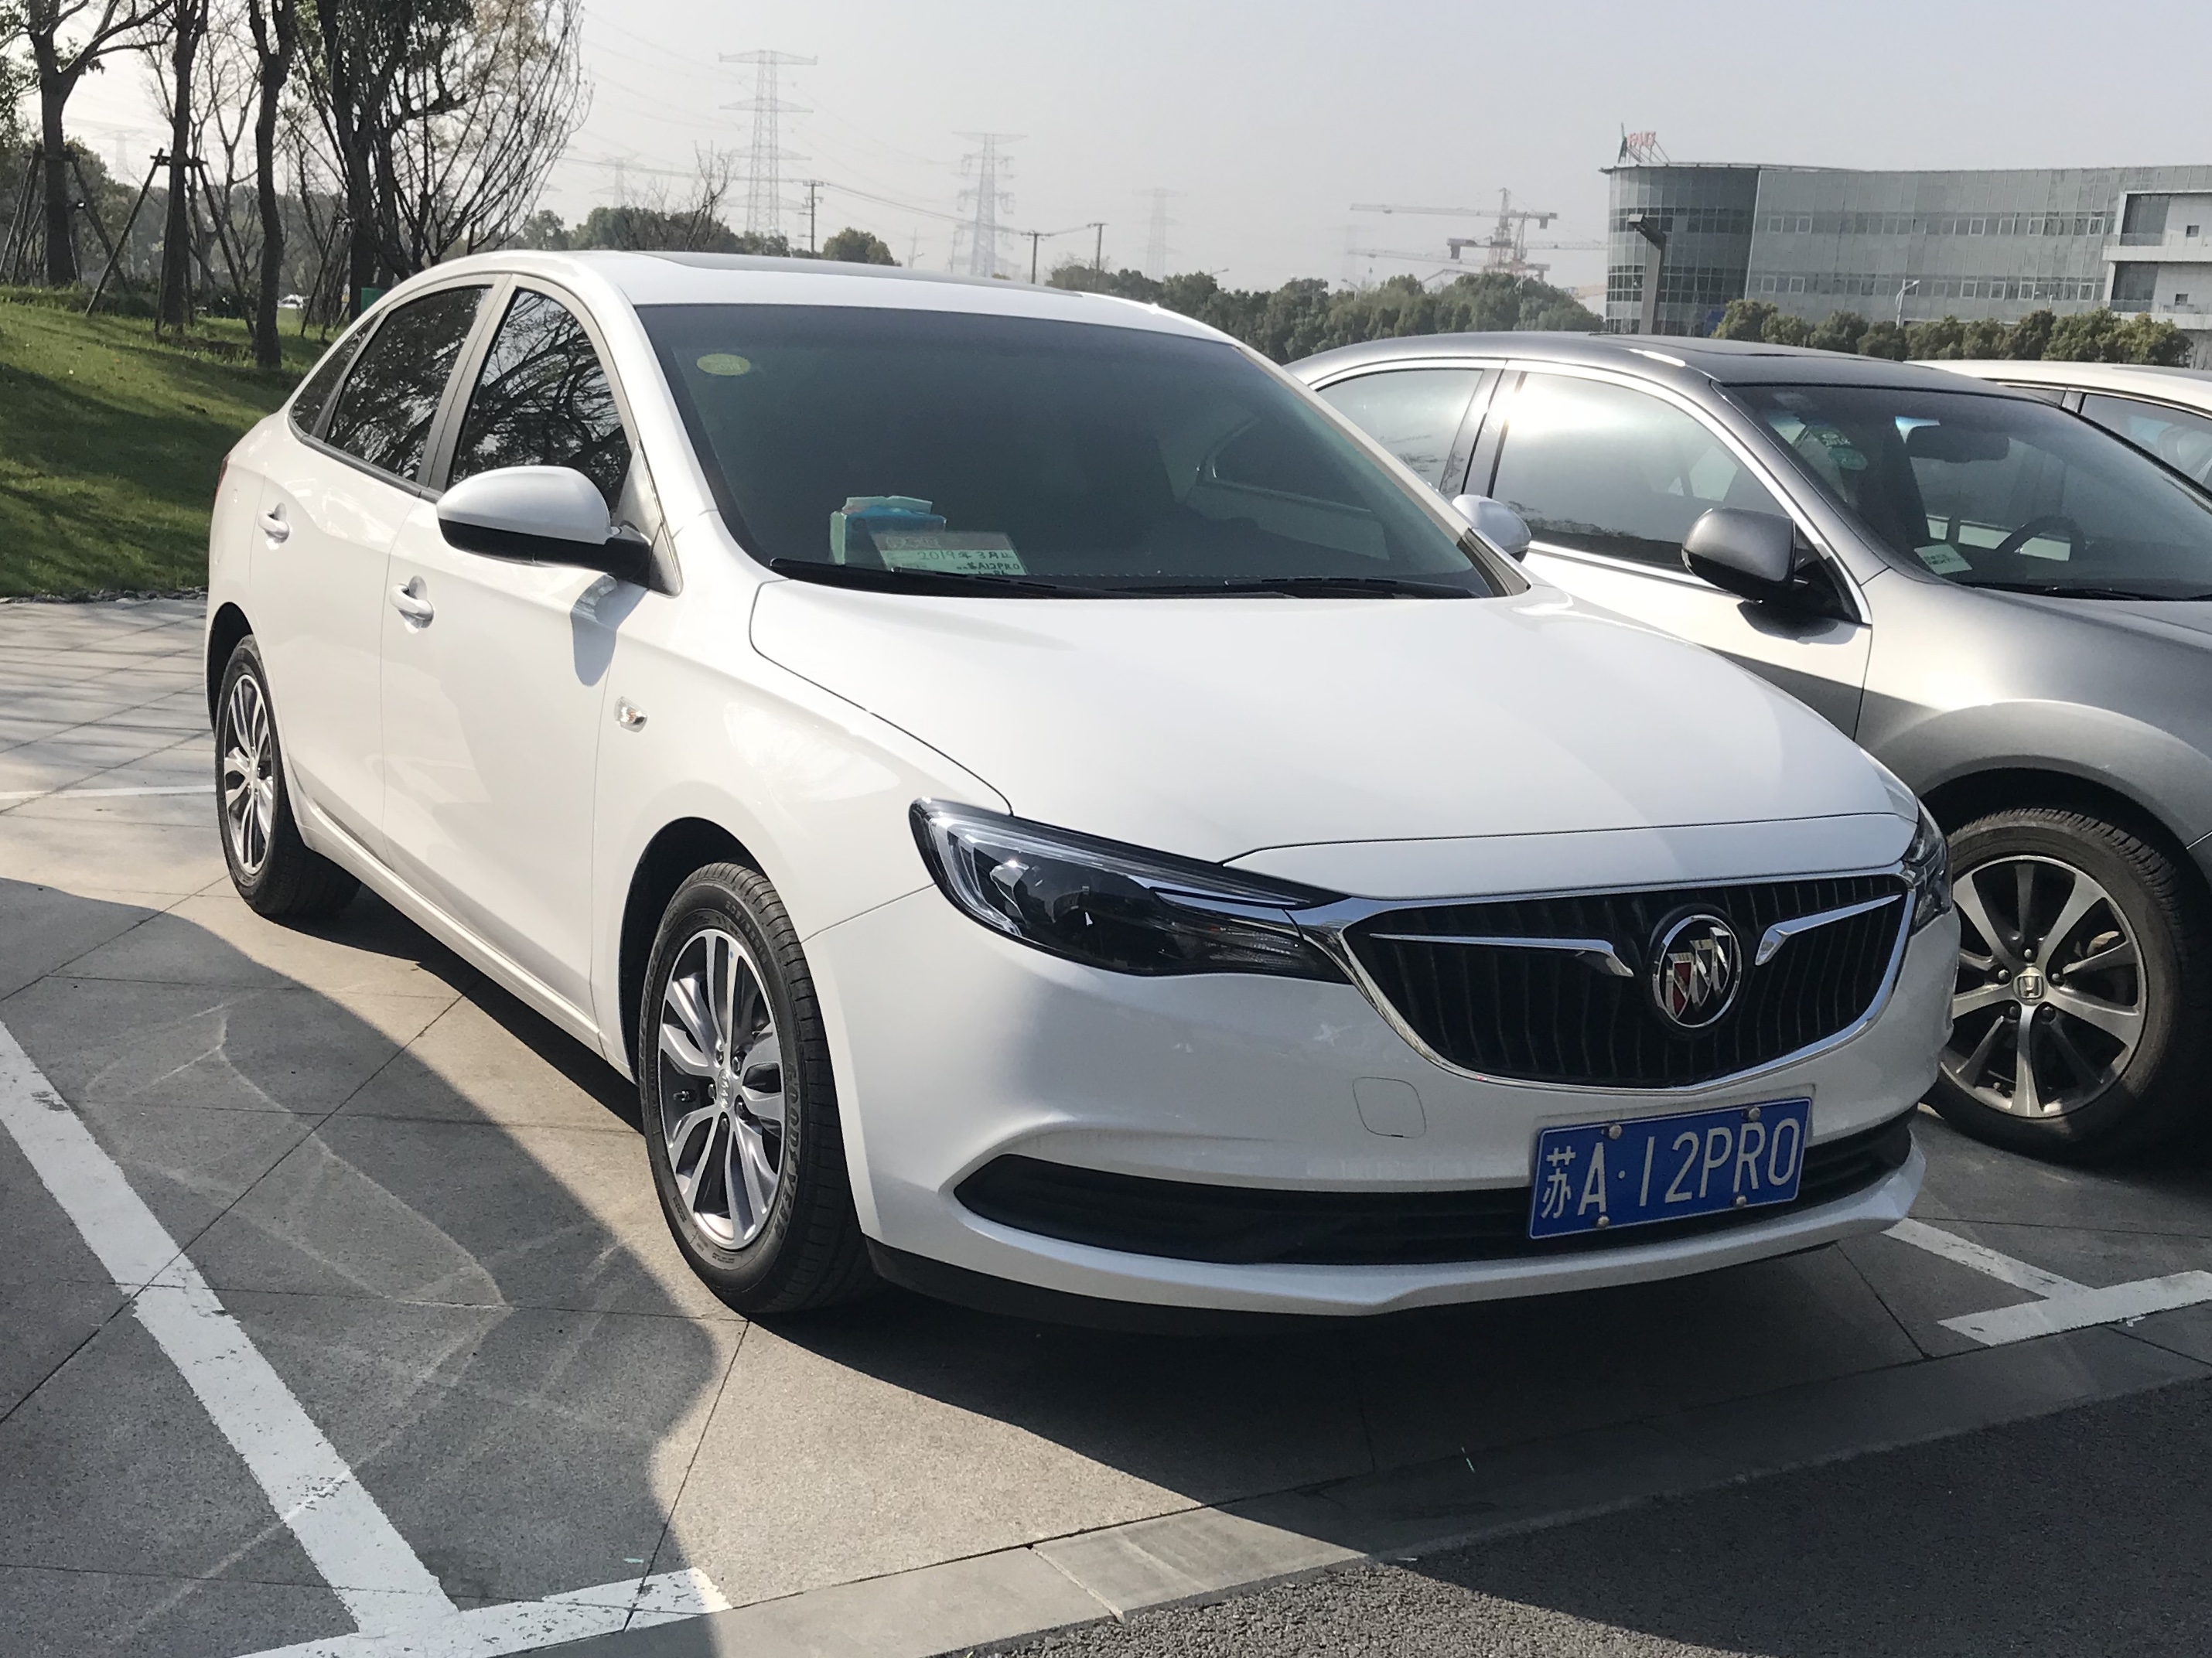 datei:2018 buick excelle gt – wikipedia